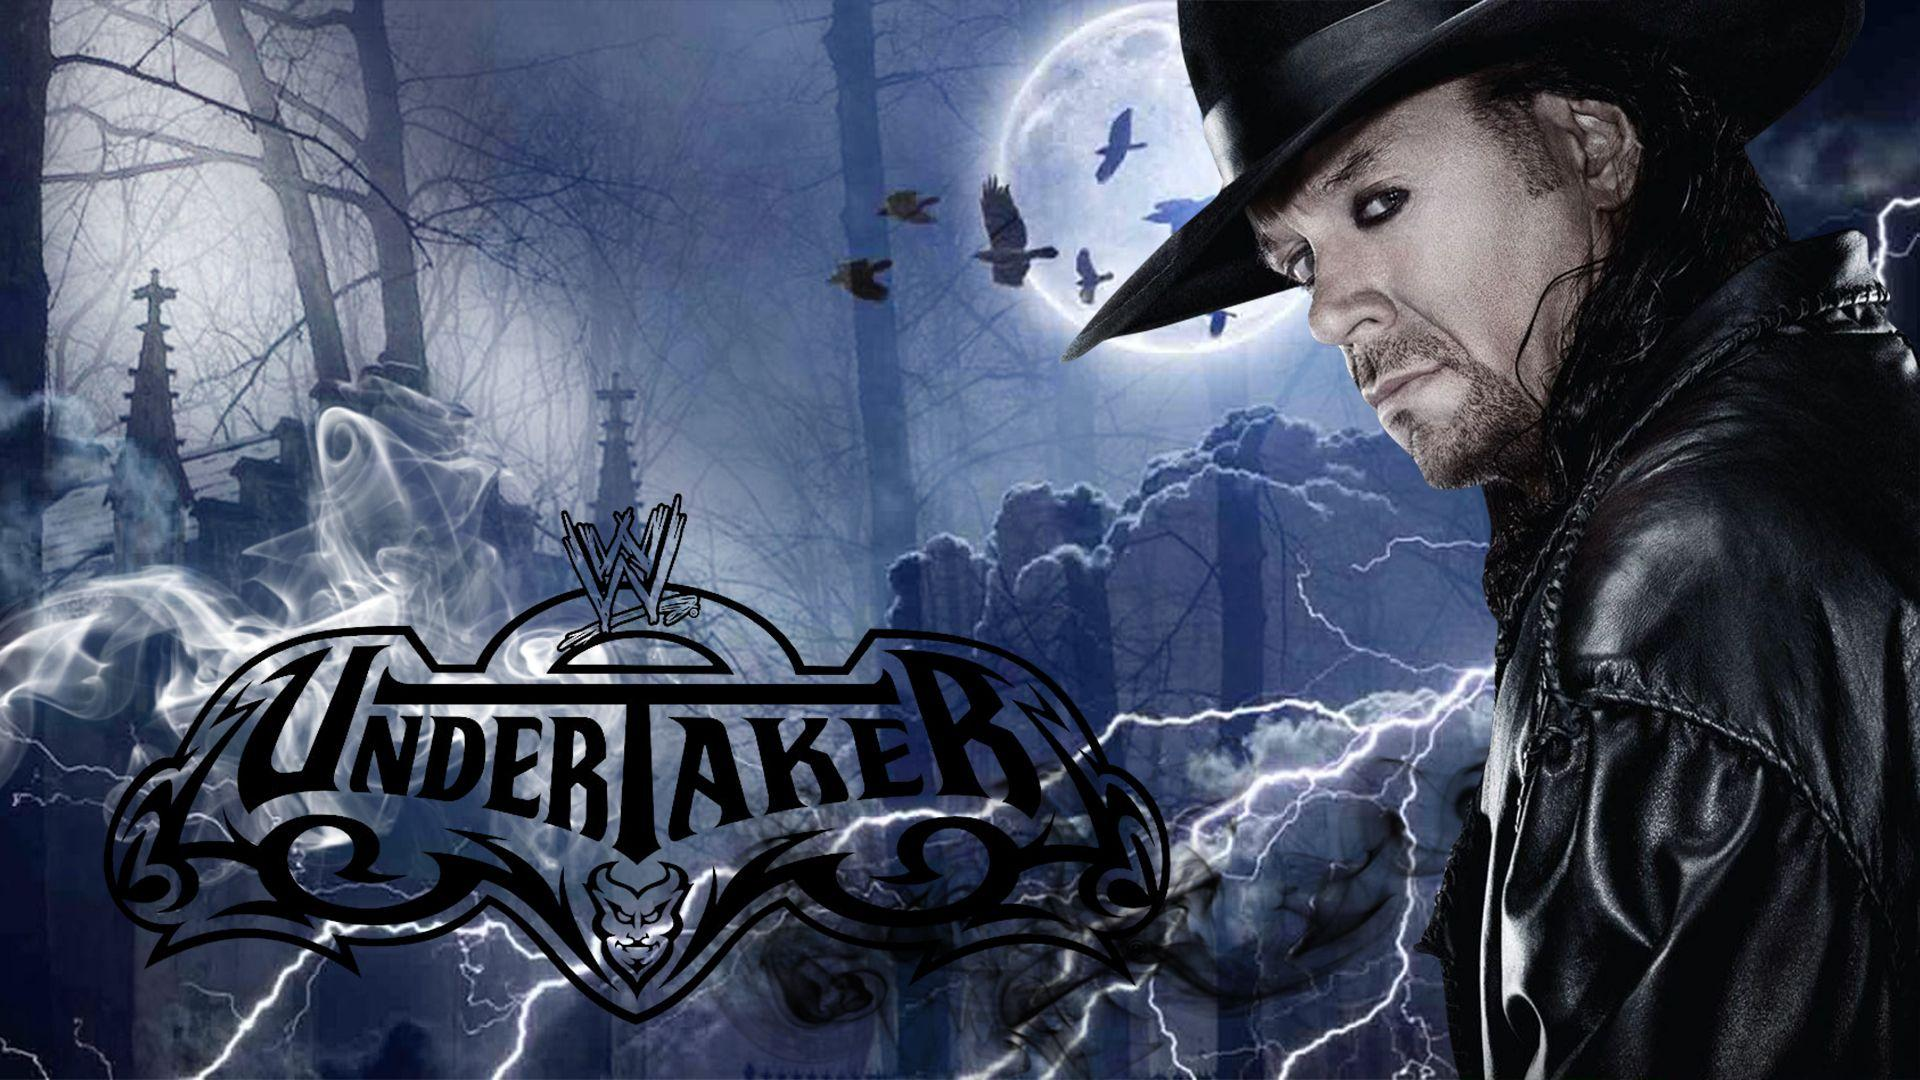 The Undertaker 2019 Wallpapers ...